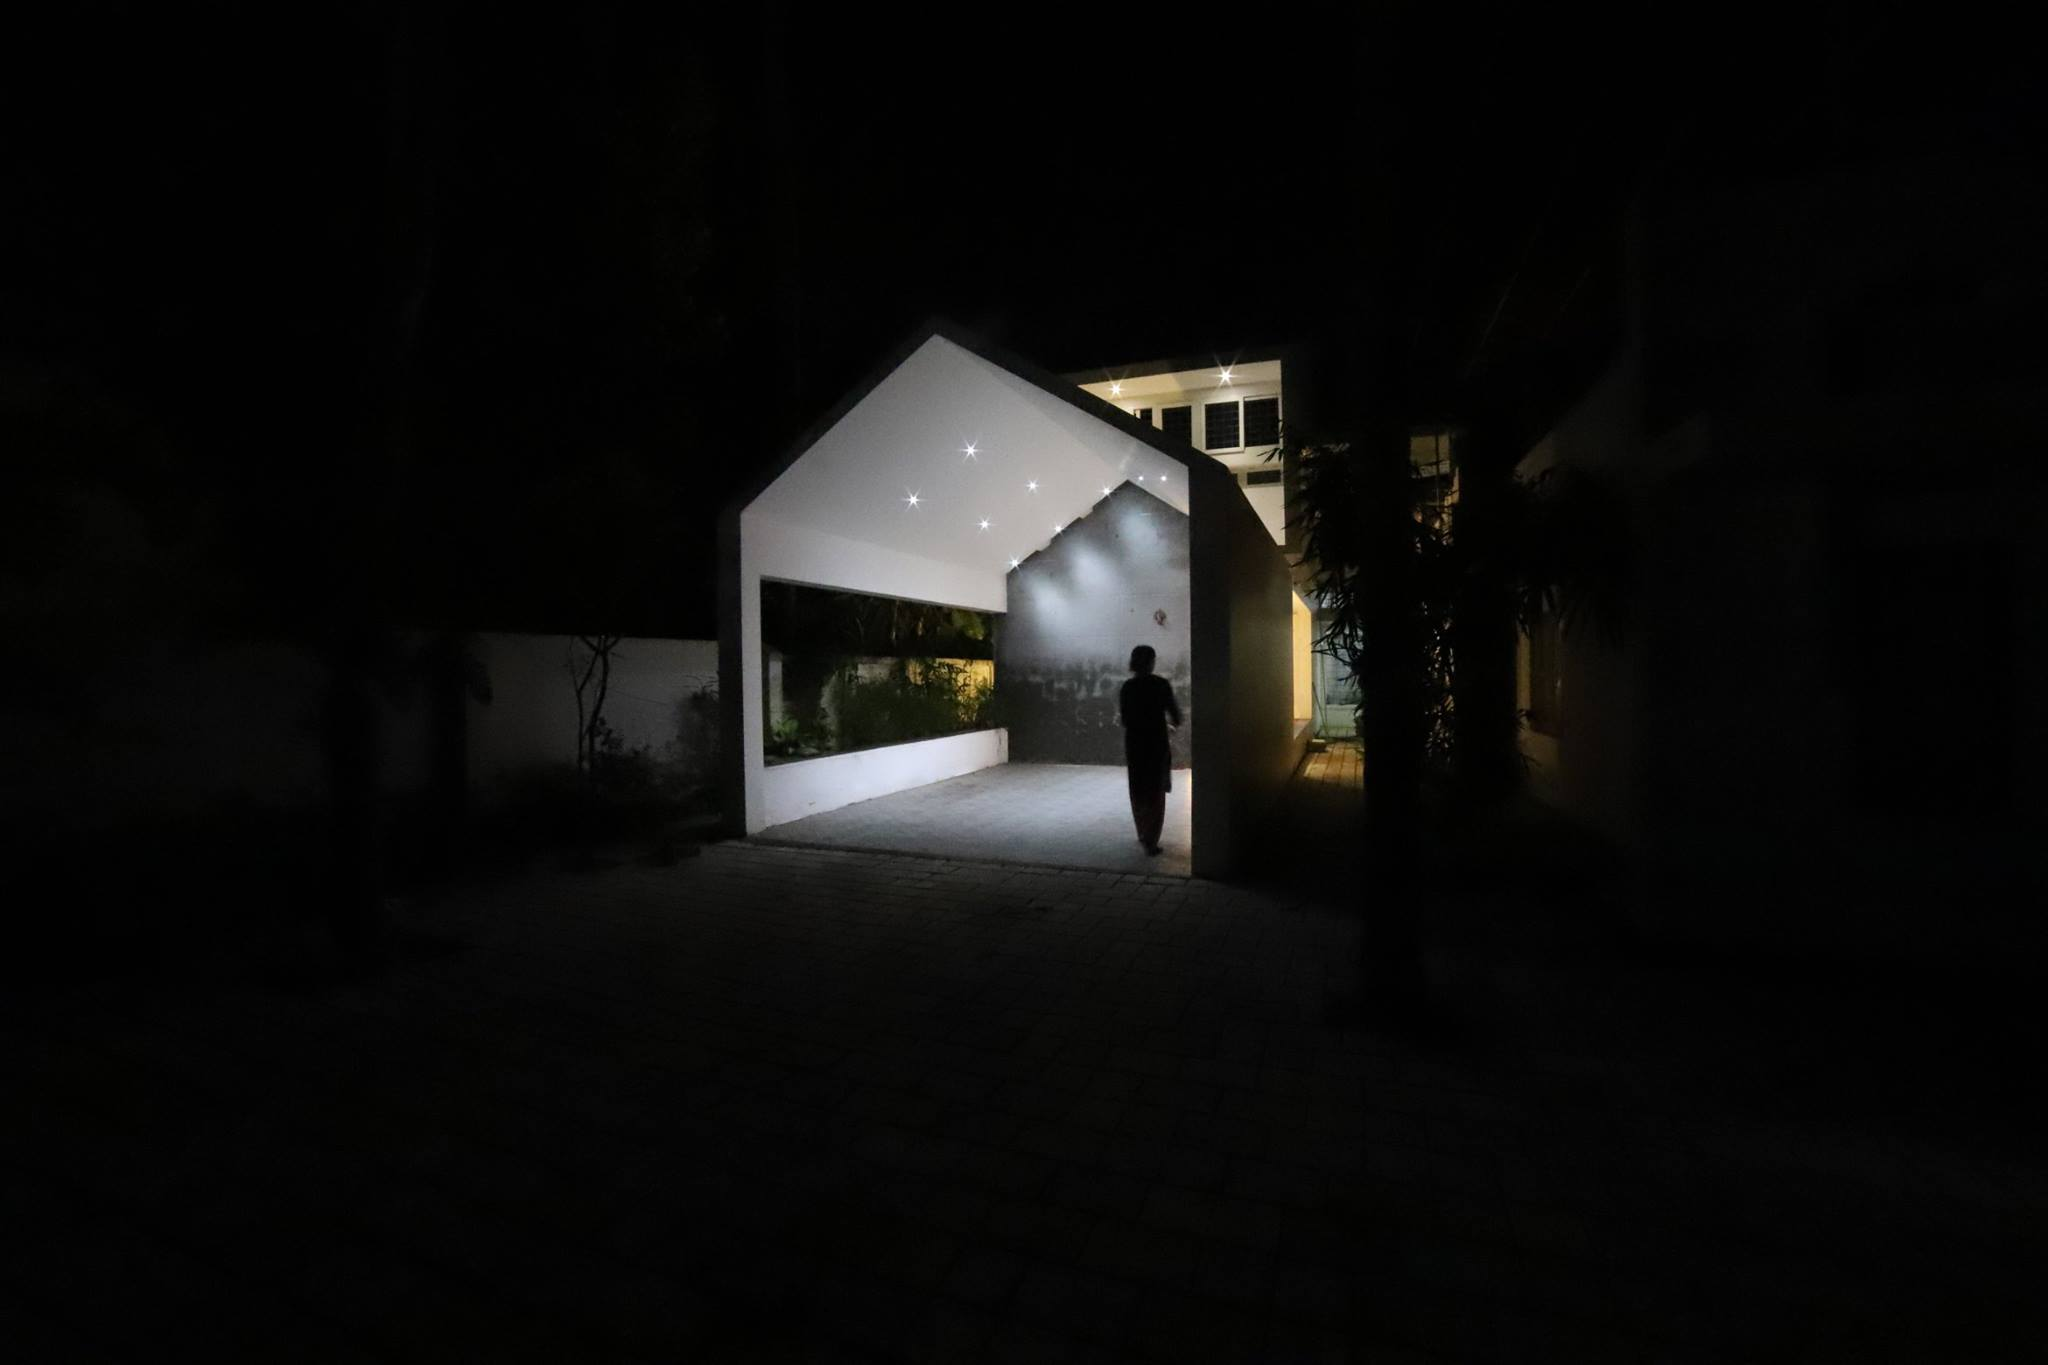 Ambient House No Architects Designers And Social Artists Media Photos And Videos 4 Archello